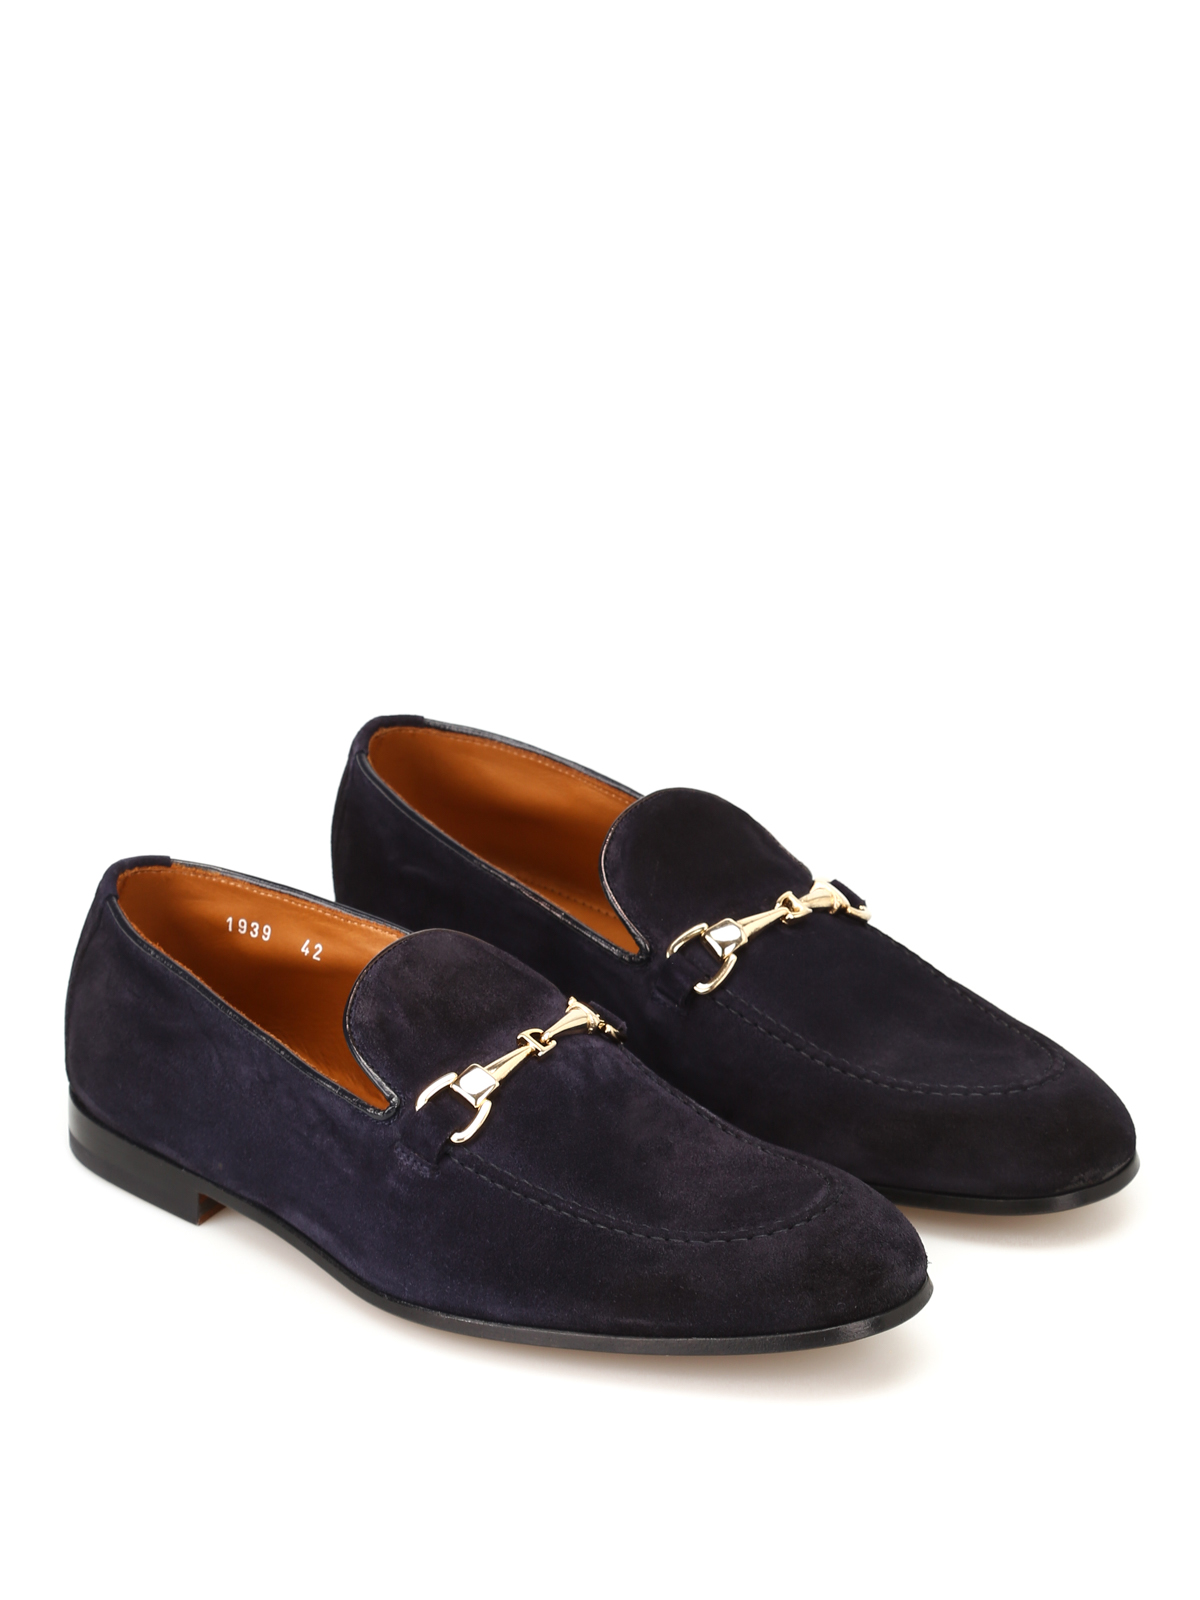 35132ba63e6 Doucal s - Light Point blue suede loafers - Loafers   Slippers ...